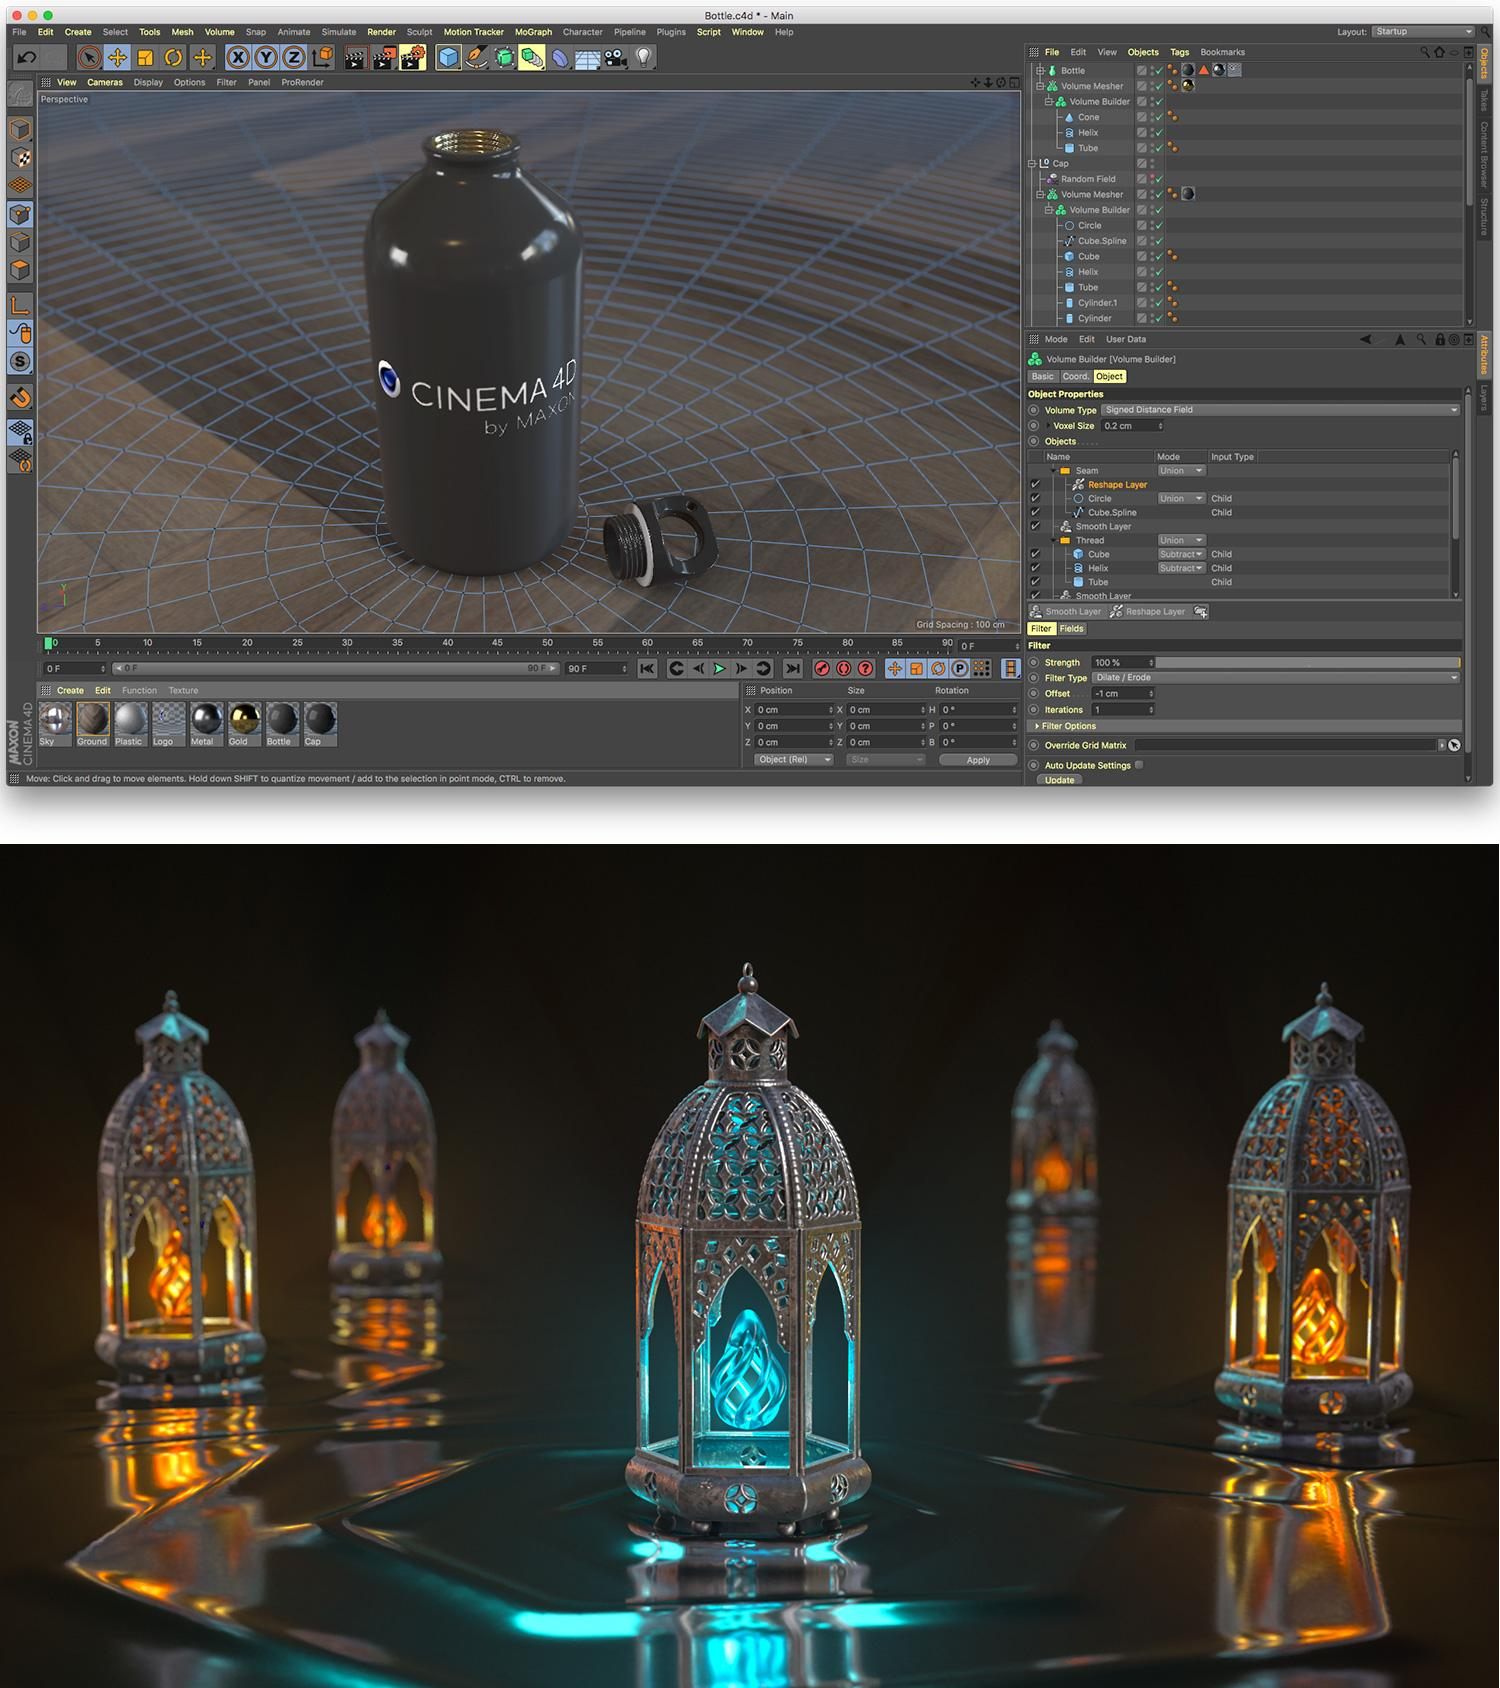 Cinema 4D R20 is out now, adding impressive new modelling